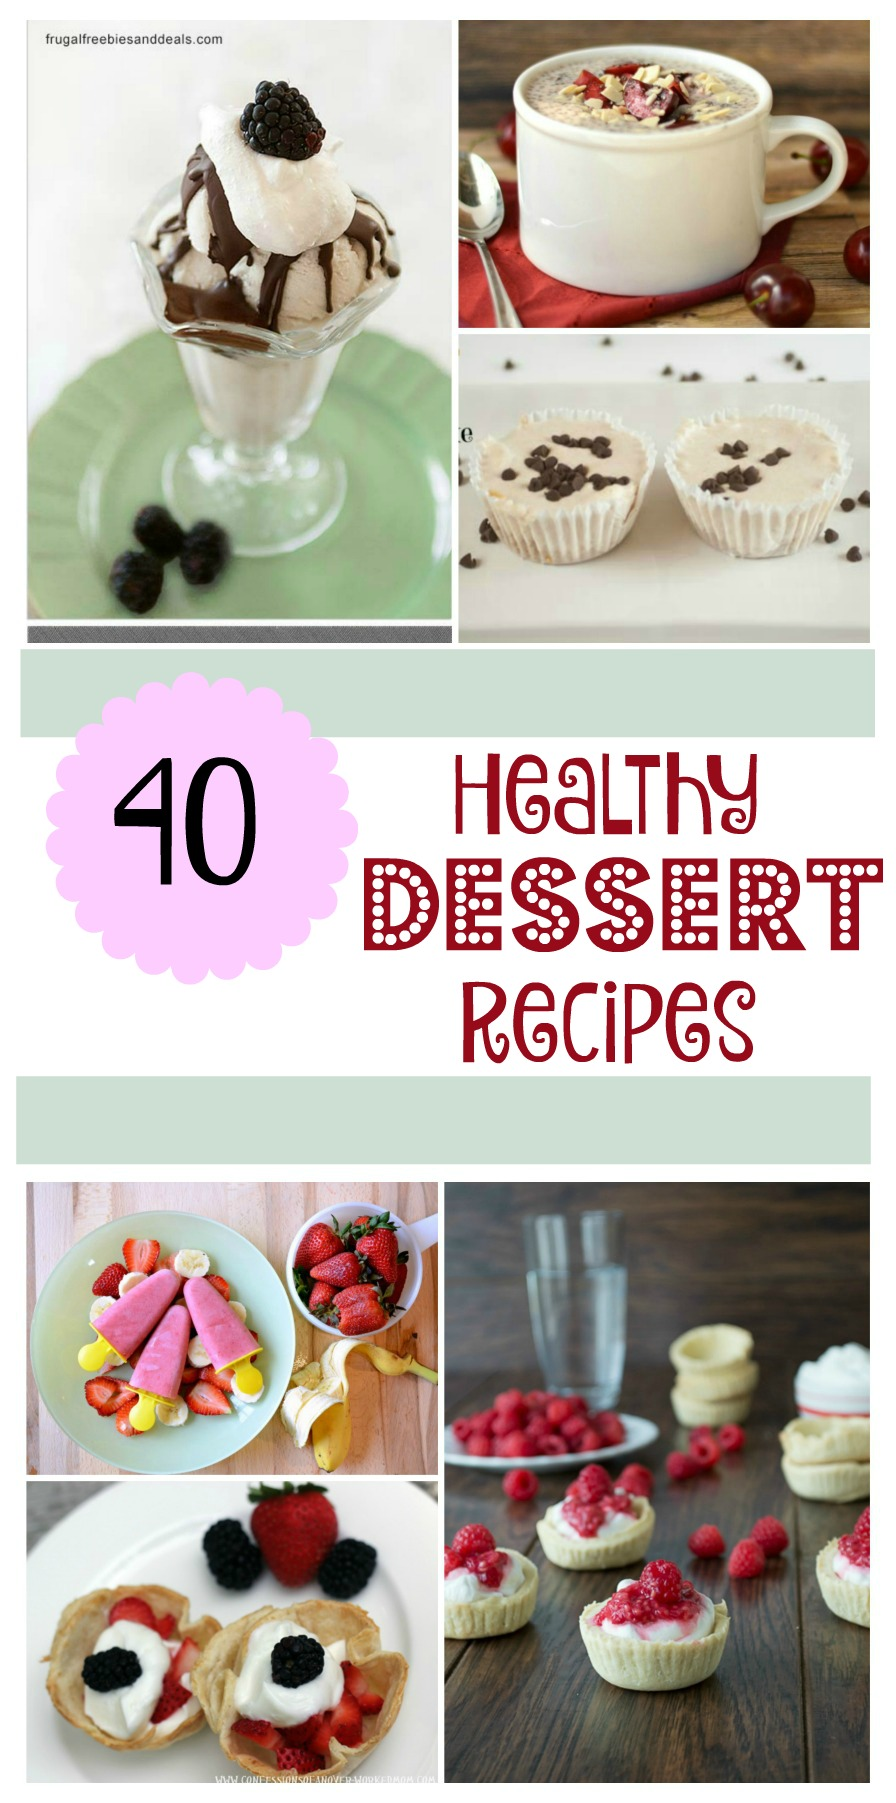 Looking for some amazing recipes? Check out these 40 healthy dessert recipes here!